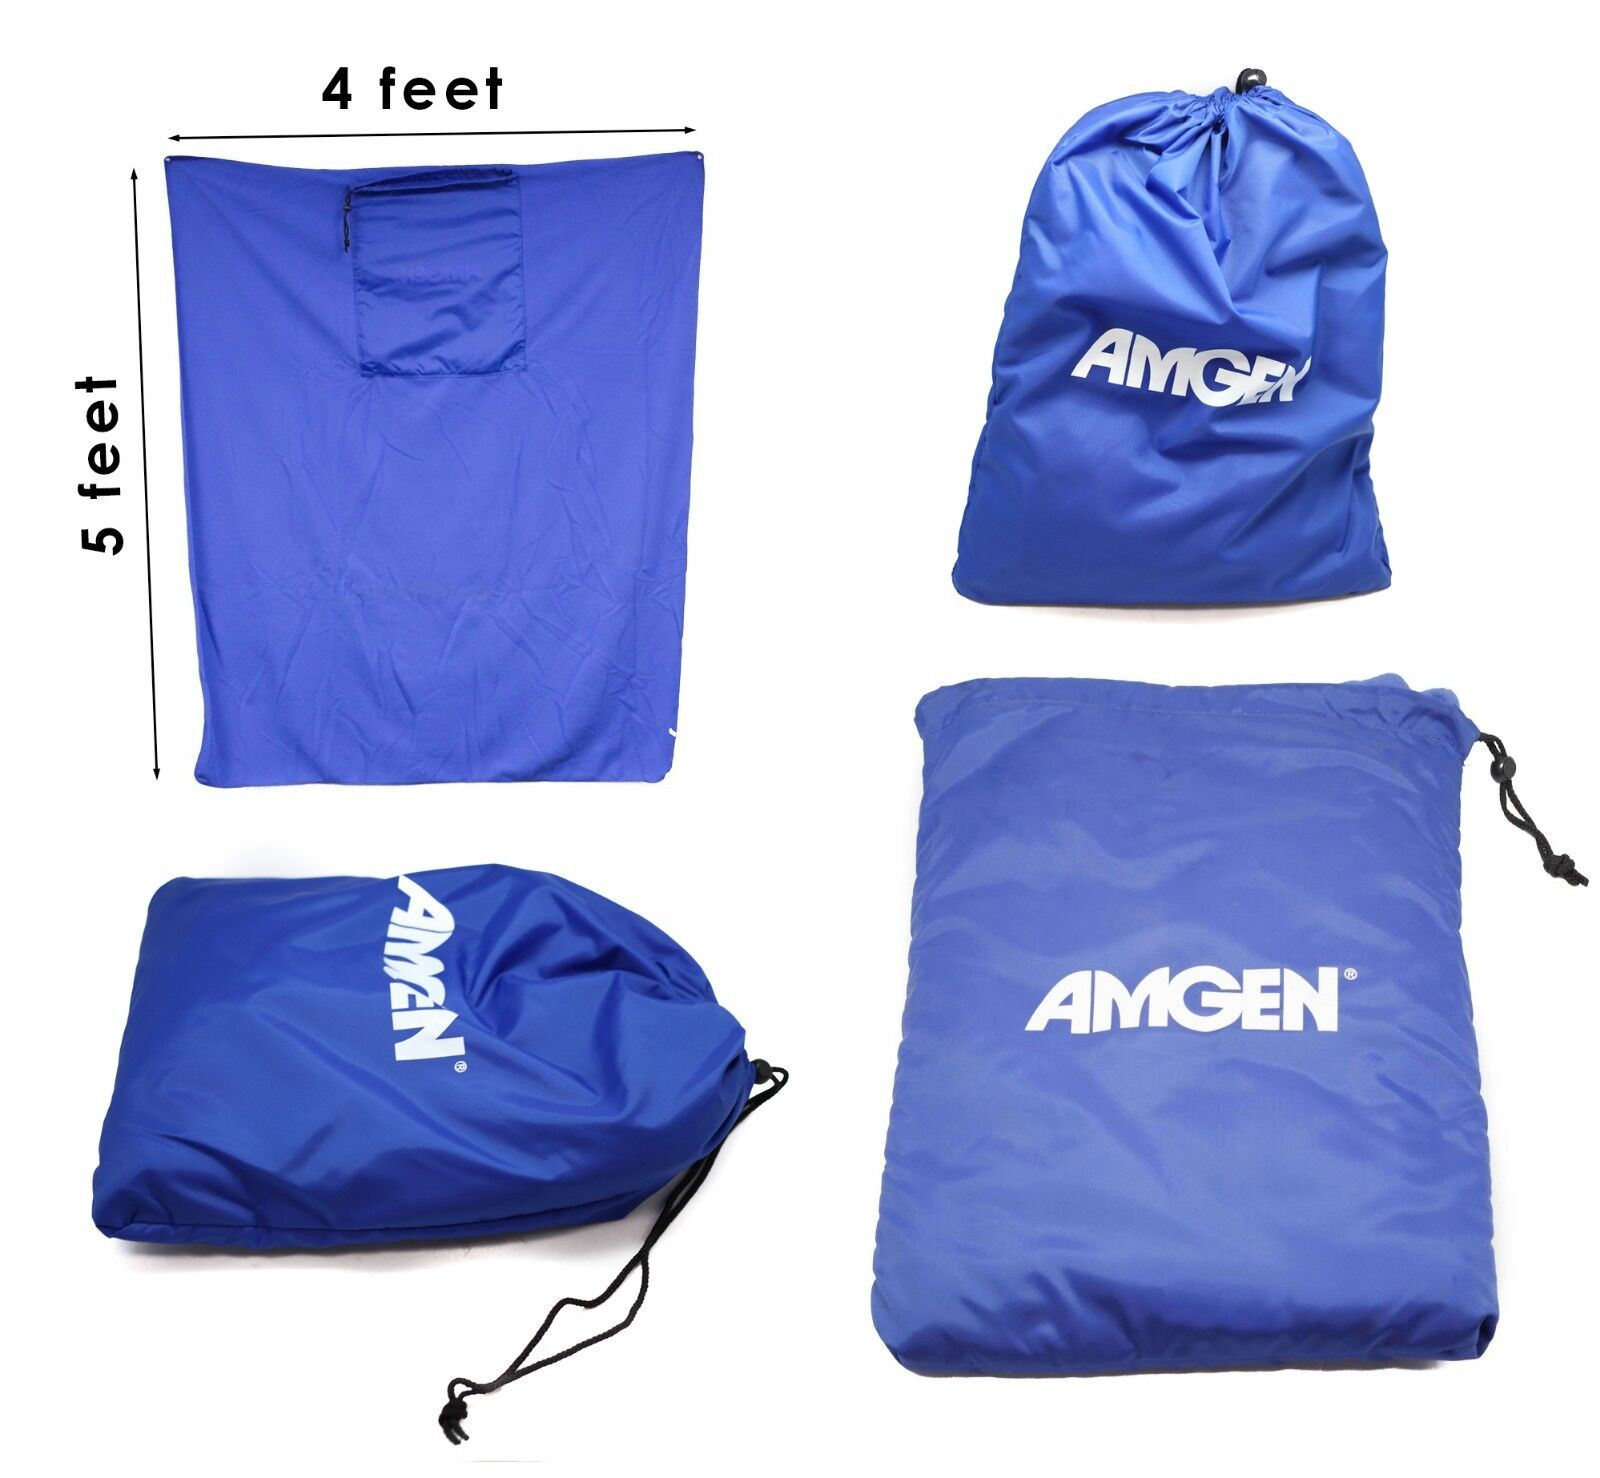 Amgen Picnic Blanket Fleece 5x4'100% Polyester Feels Warm Co